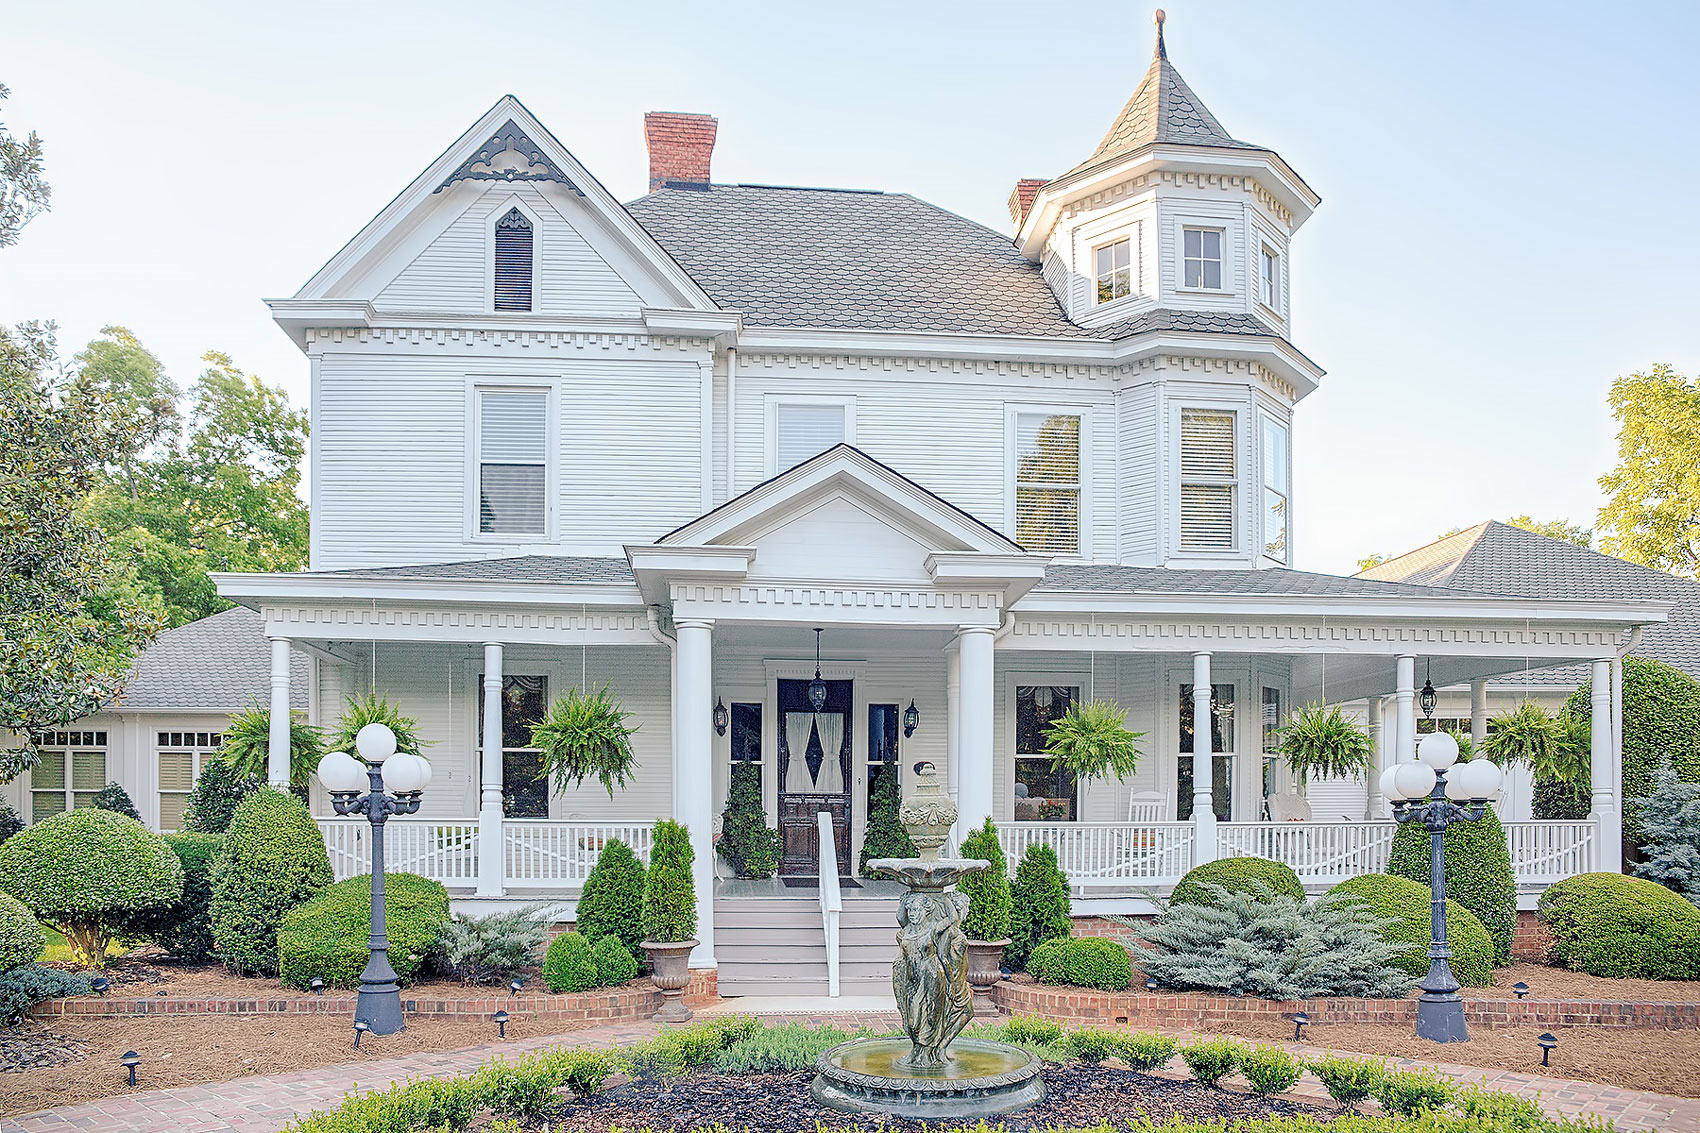 Designated a historic landmark, the Victorian Crow's Nest in Monroe, North Carolina, built in 1884, is exemplary of the late Queen Anne Revival style.